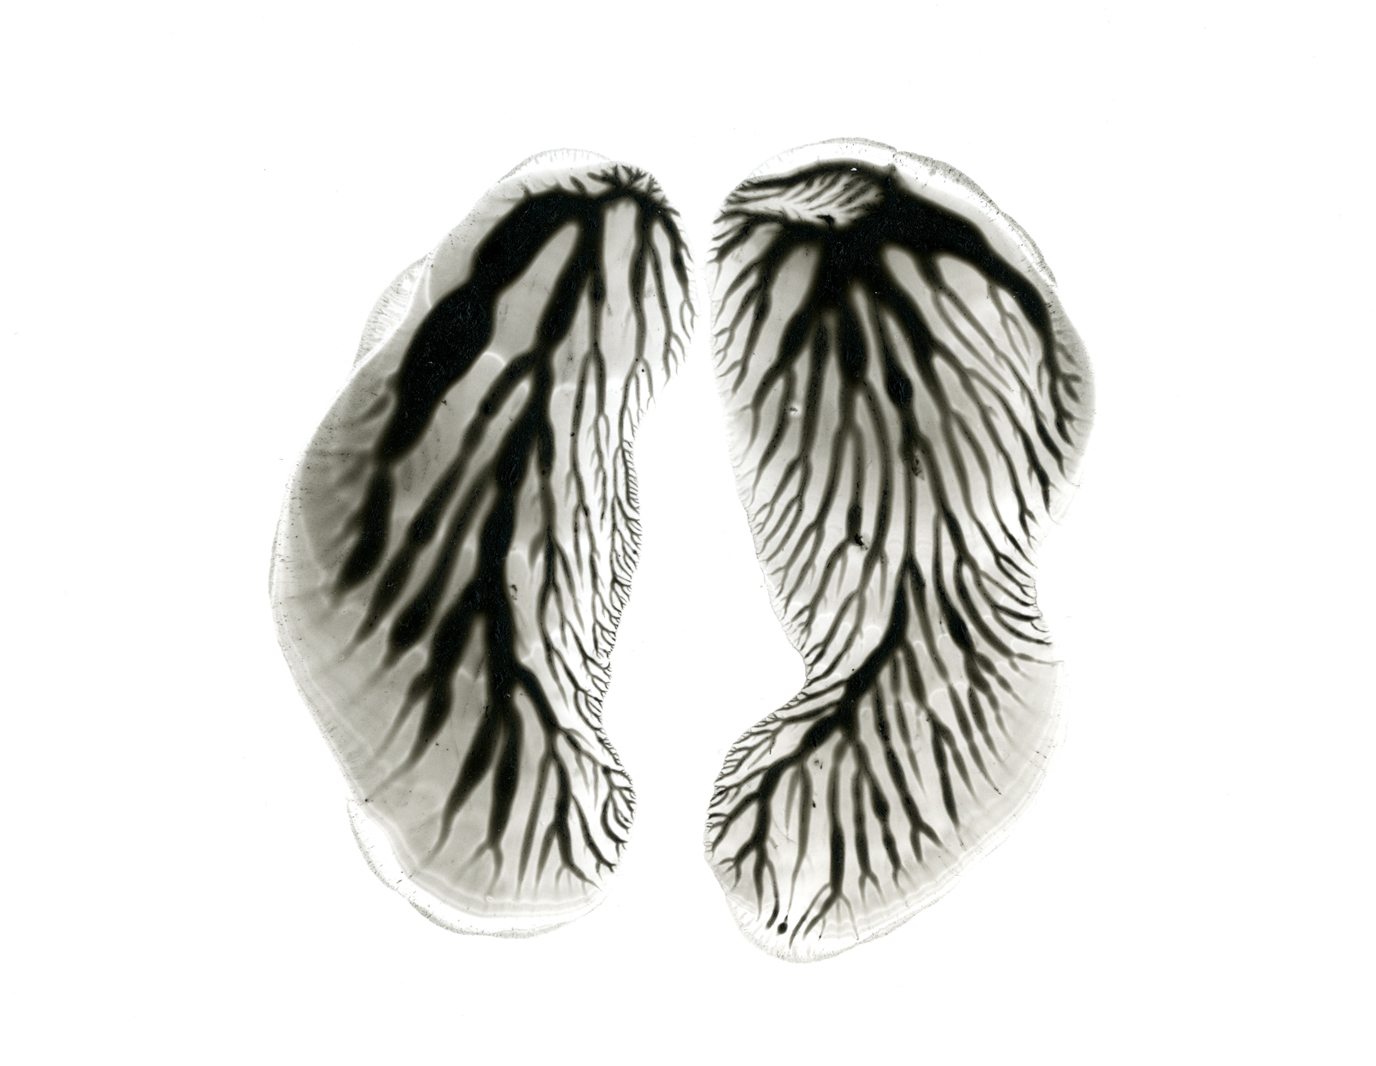 Lungs 1001 300 closeup.jpg